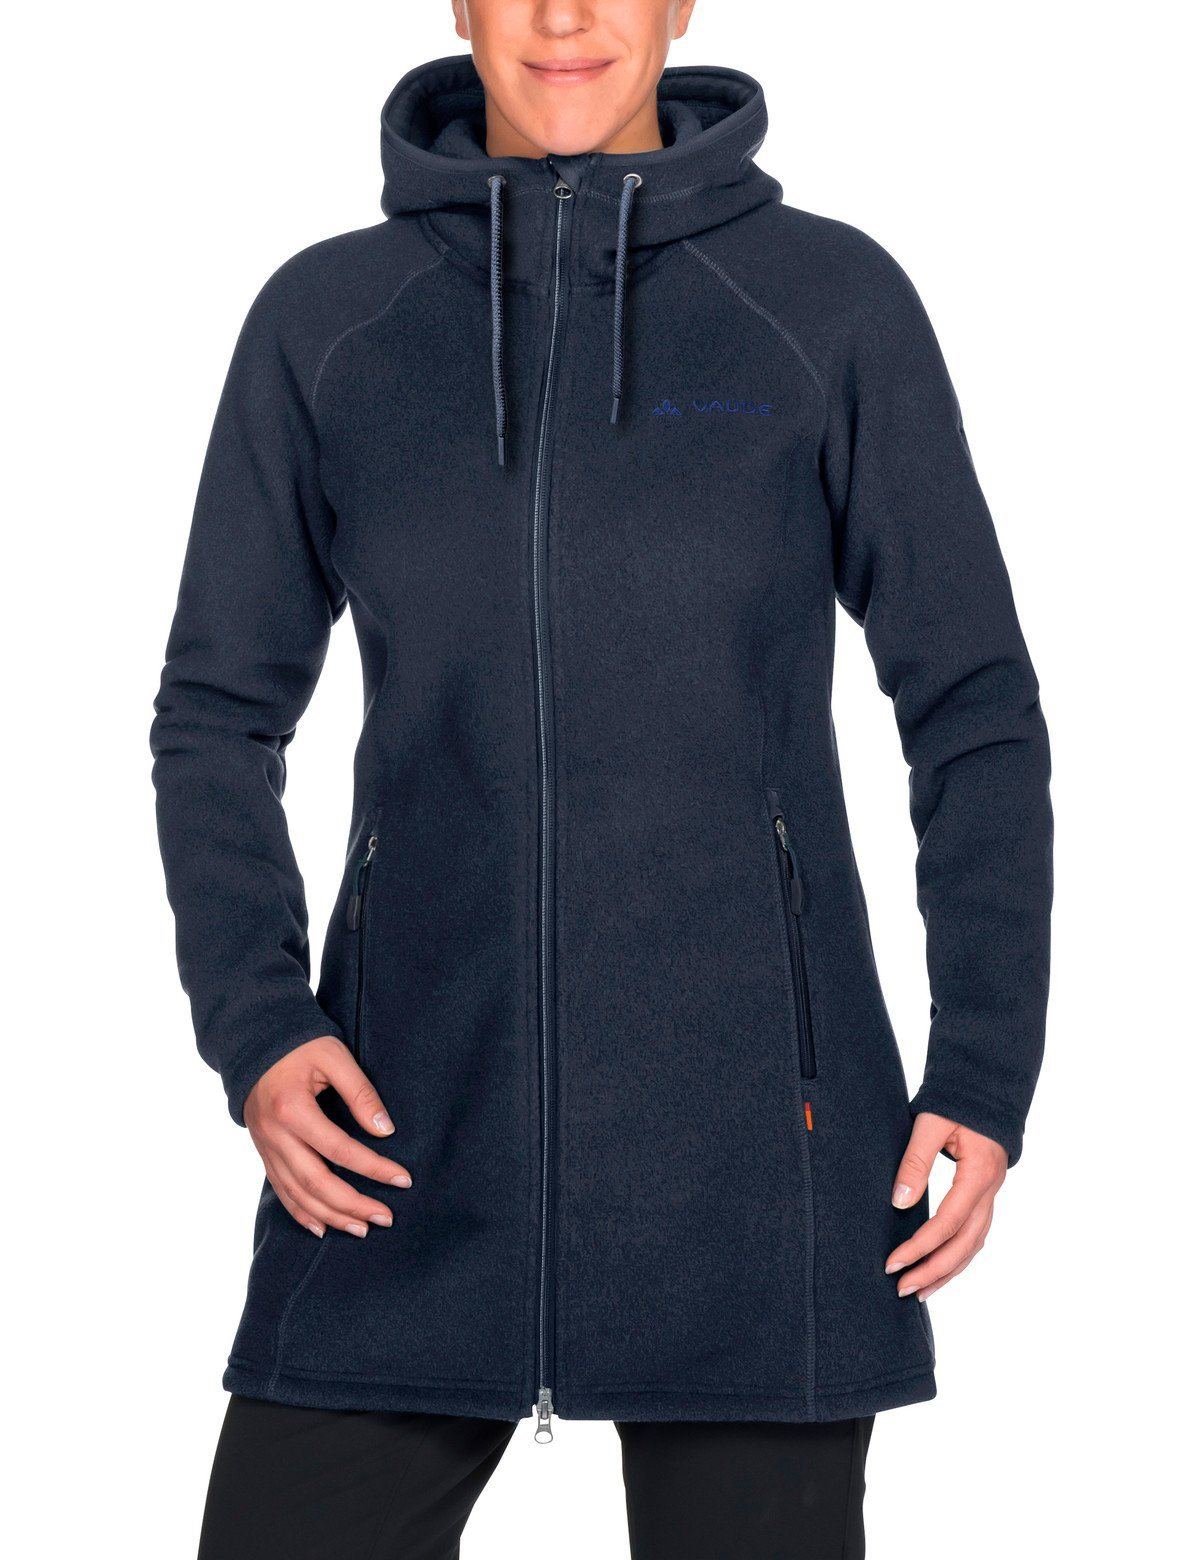 Damen VAUDE Outdoorjacke Torridon II Coat Women blau | 04052285579319